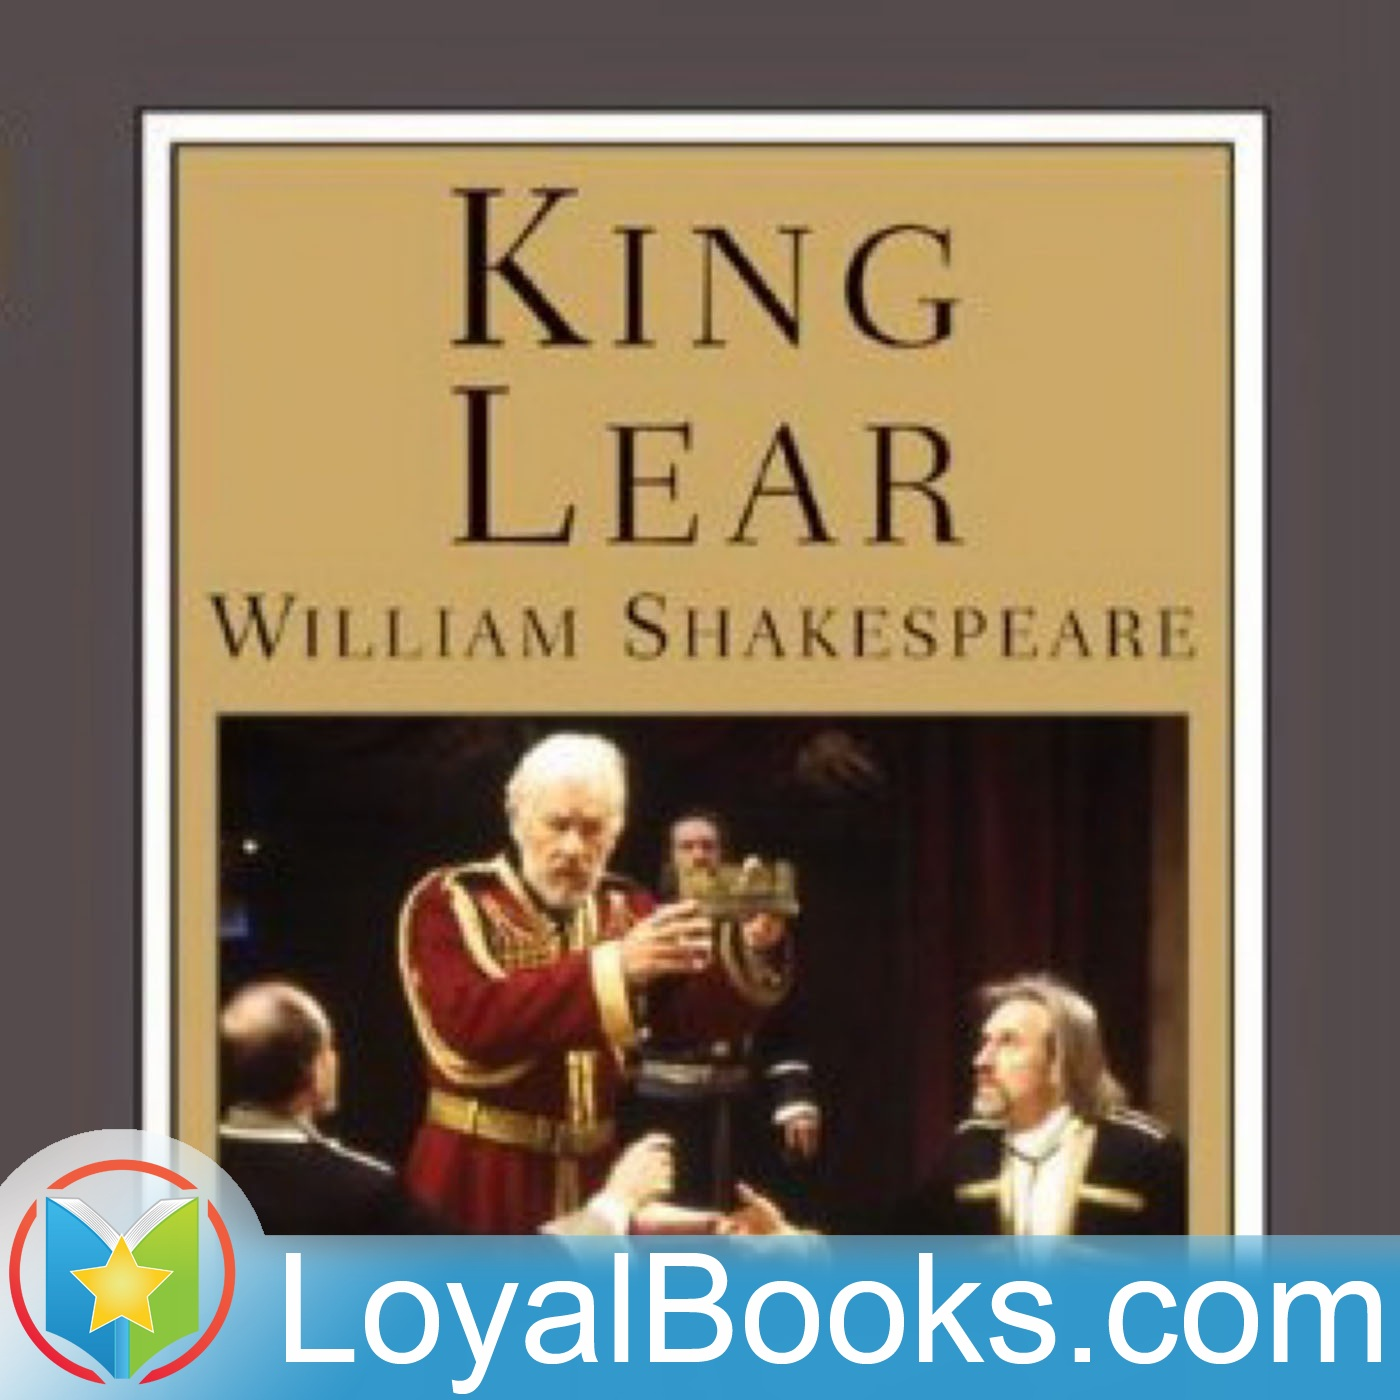 <![CDATA[King Lear by William Shakespeare]]>